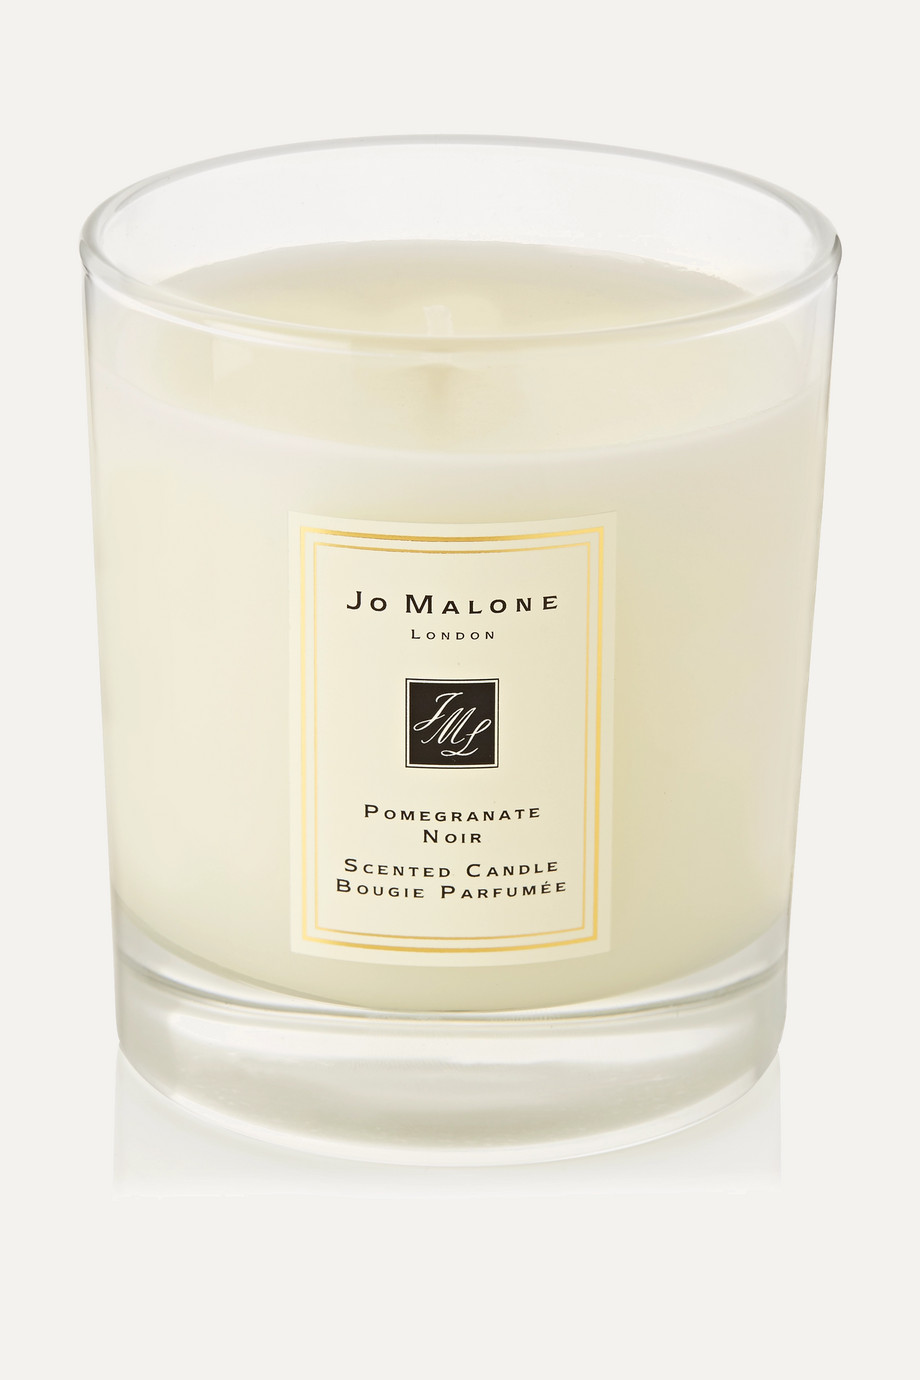 Jo Malone London Pomegranate Noir Scented Home Candle, 200g